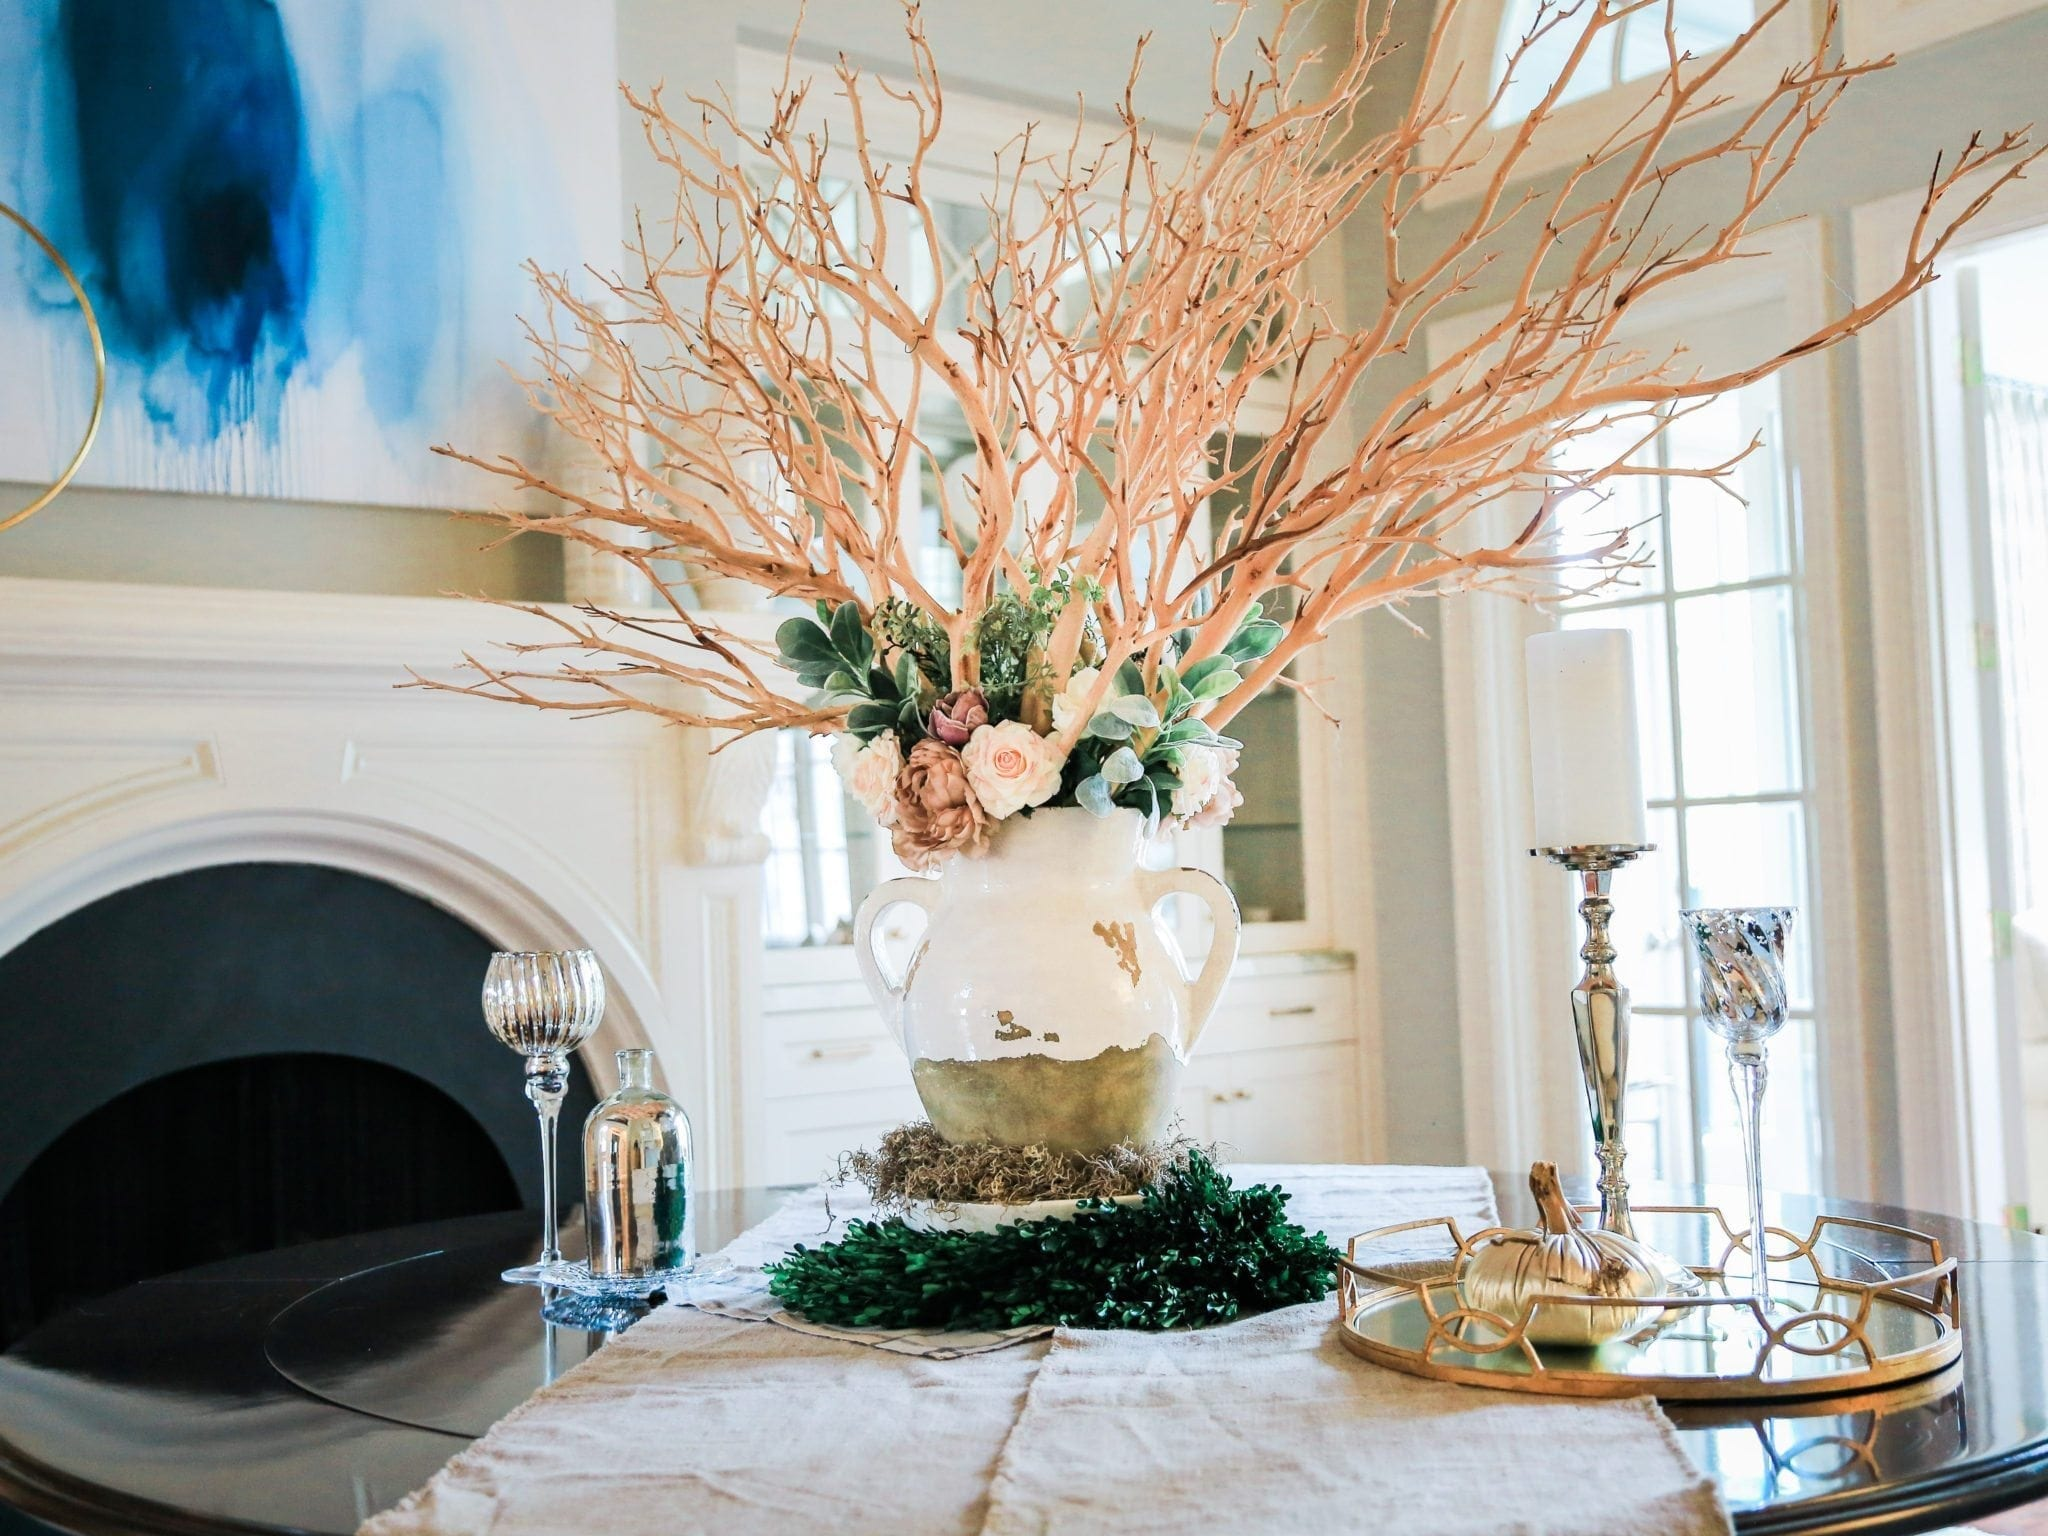 artificial real touch flowers and Pottery Barn Tuscan Urn vase in Dining room centerpiece.